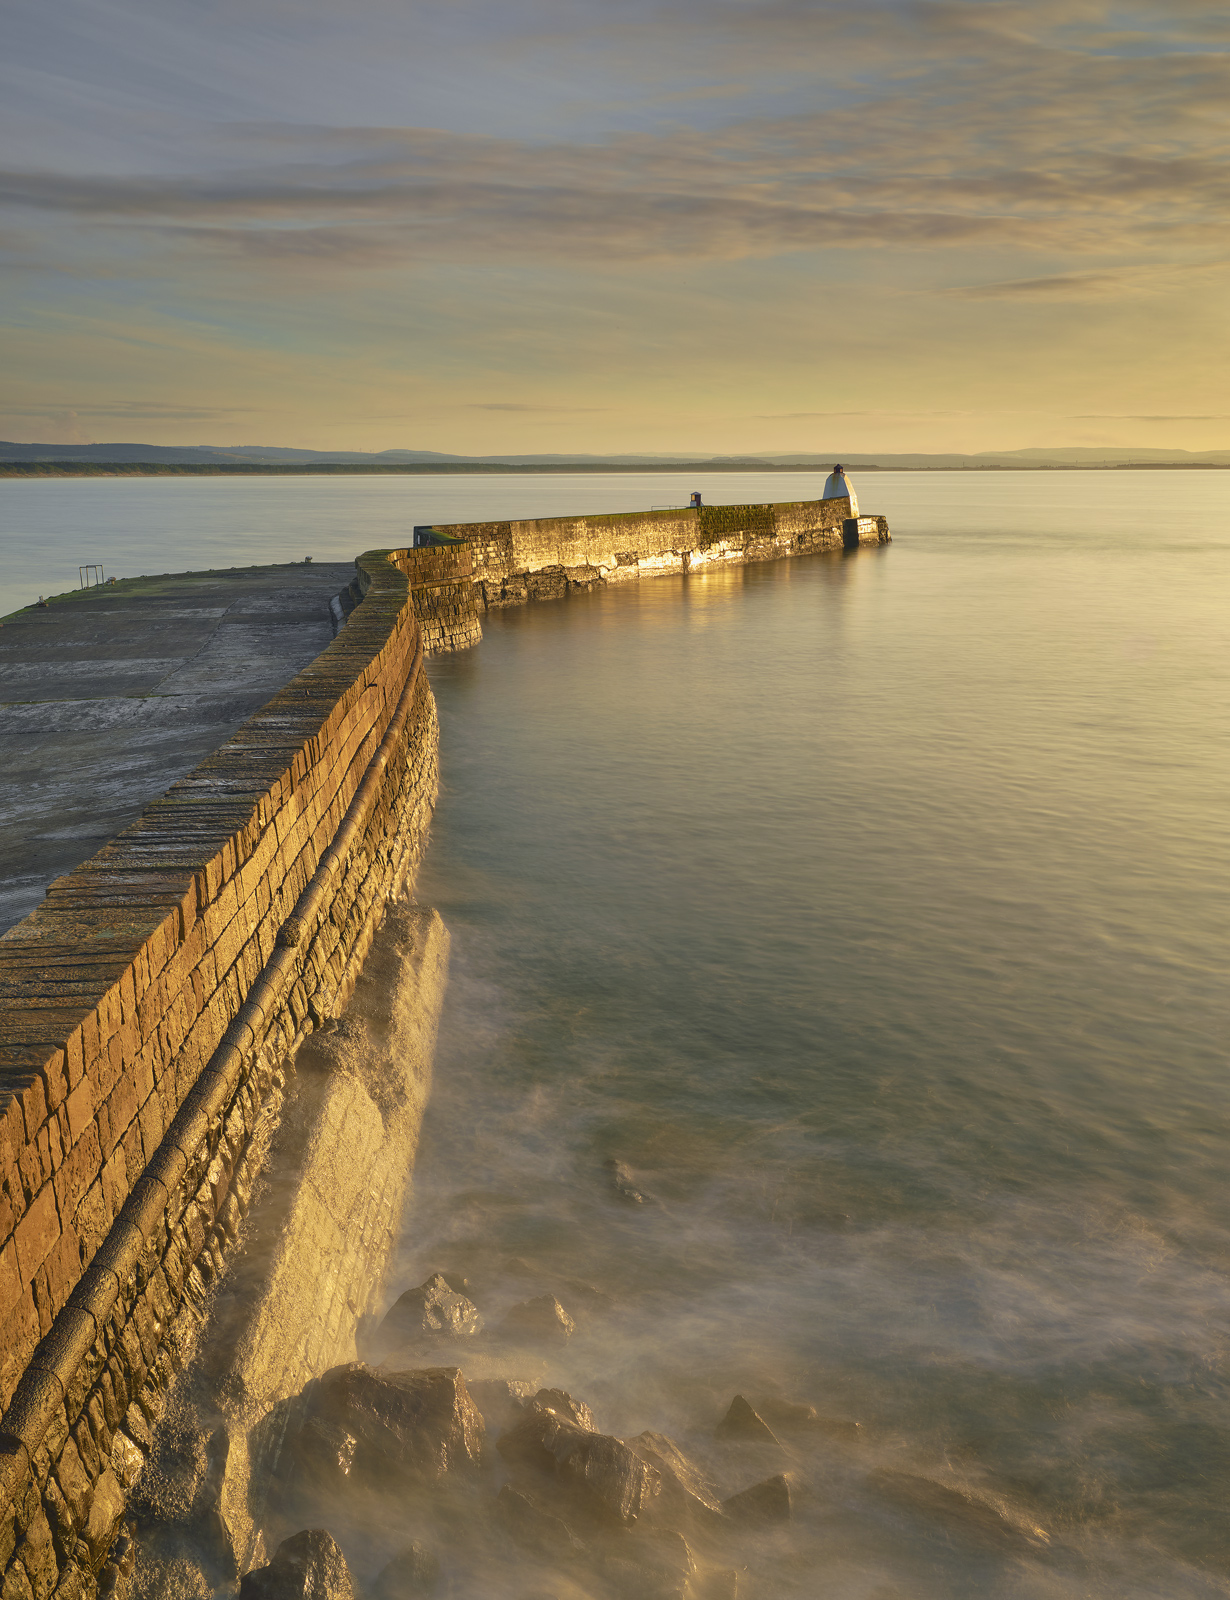 Probably my favorite moment of this gorgeous winter evening at Burghead harbour was just before sunset with the sun emerging...